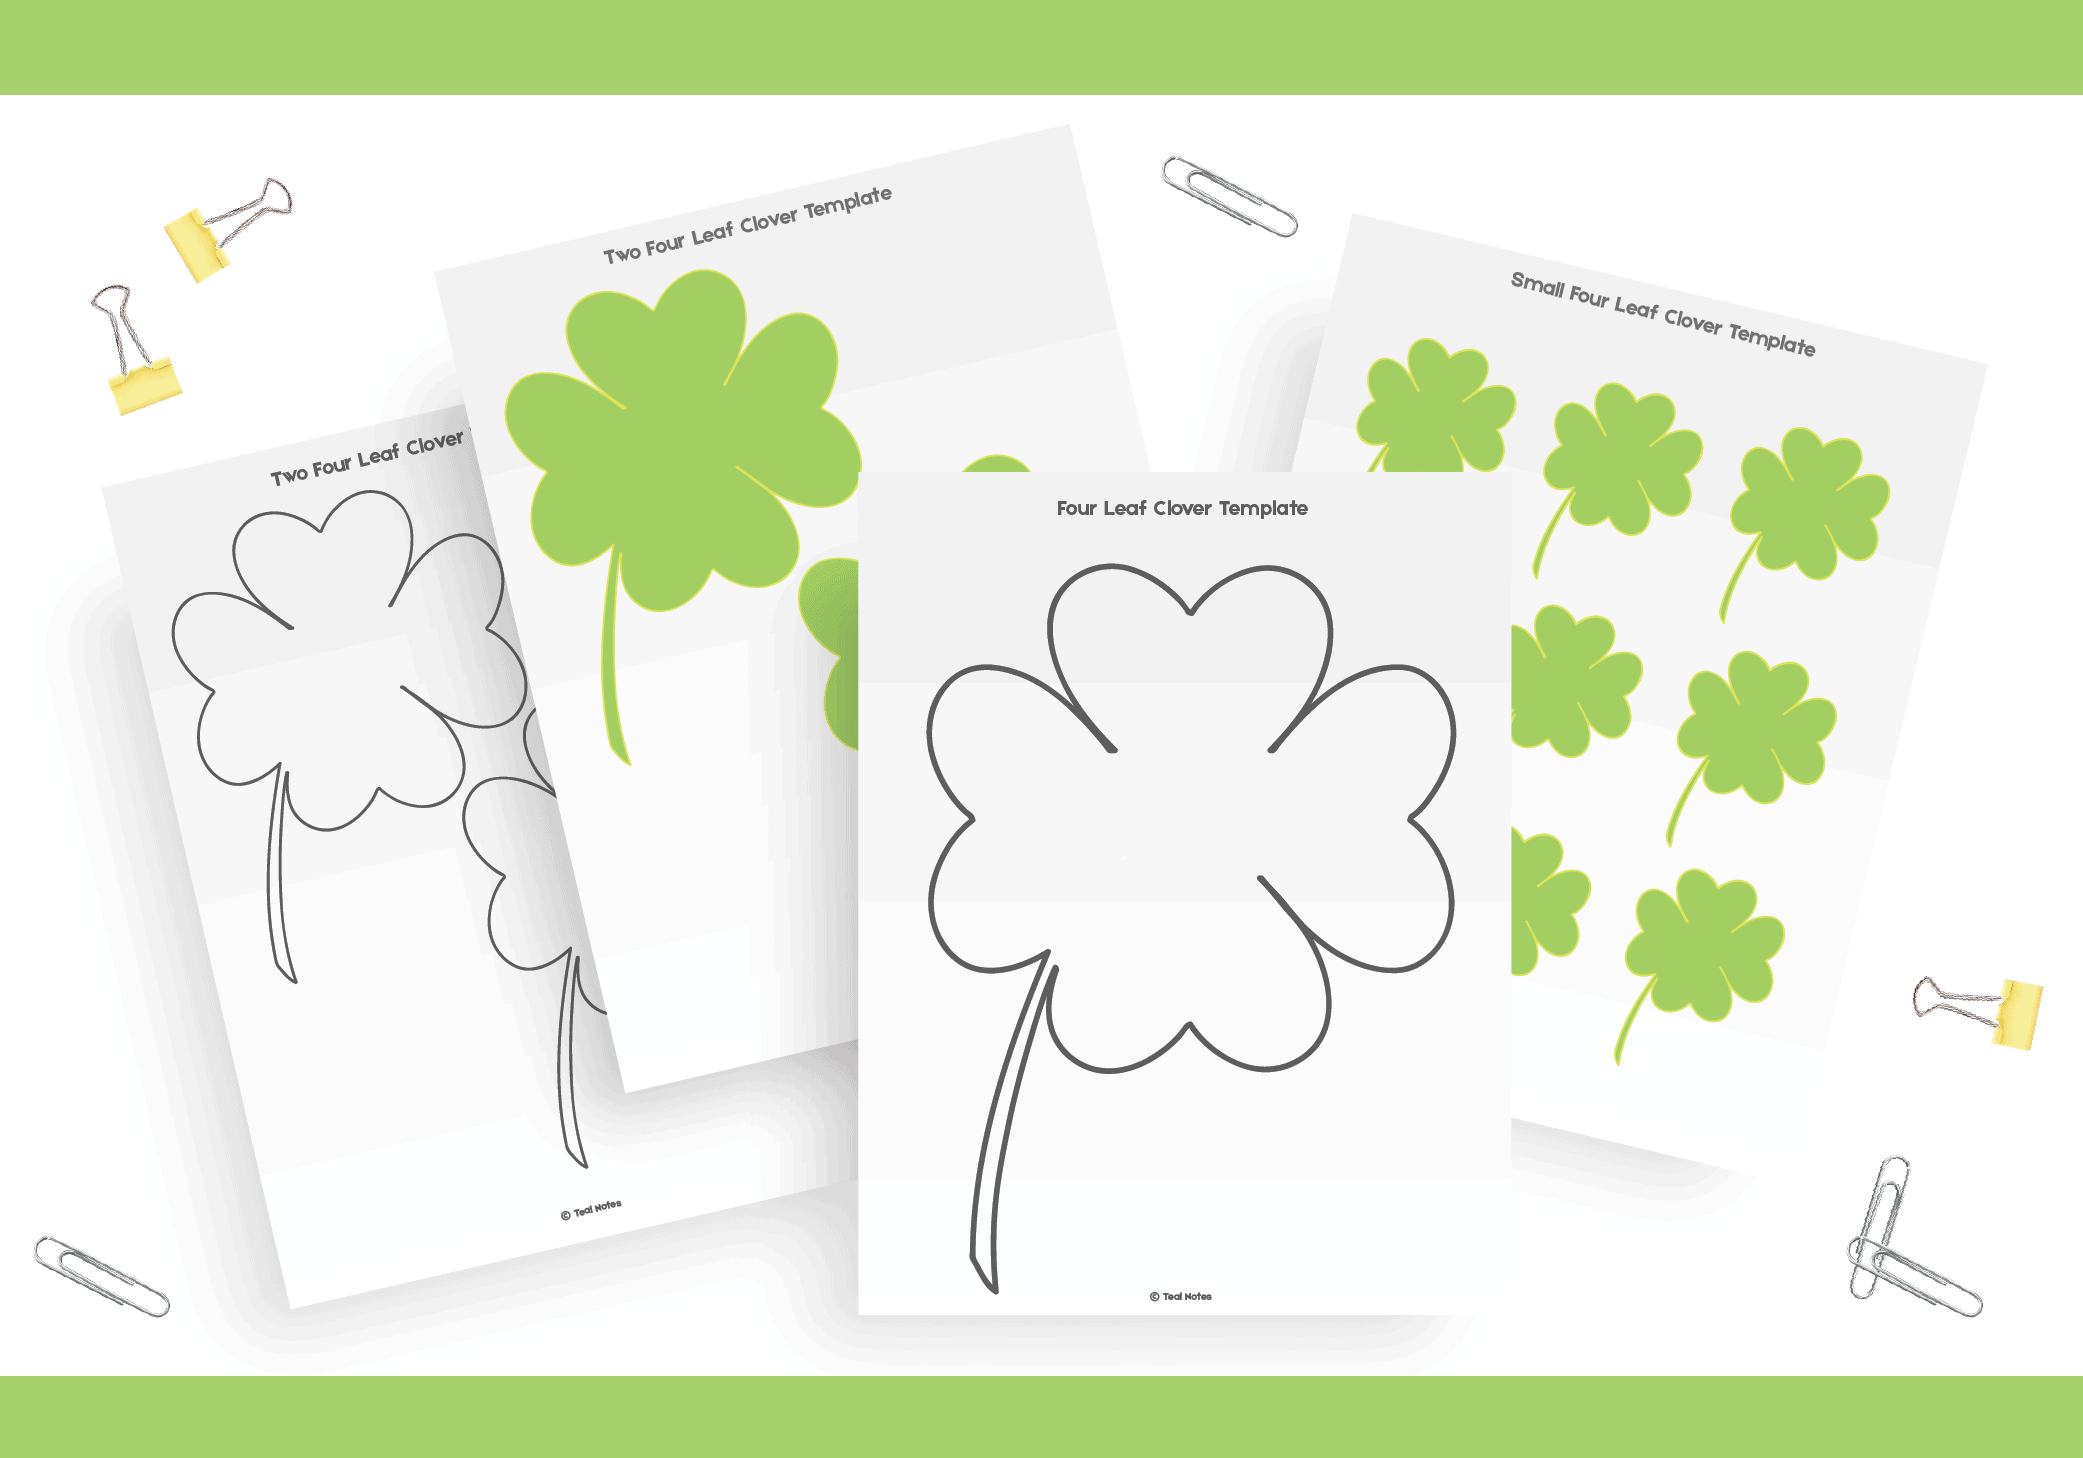 image relating to Printable Shamrock Template referred to as 4 Leaf Clover Template: No cost Shamrock Template Printable